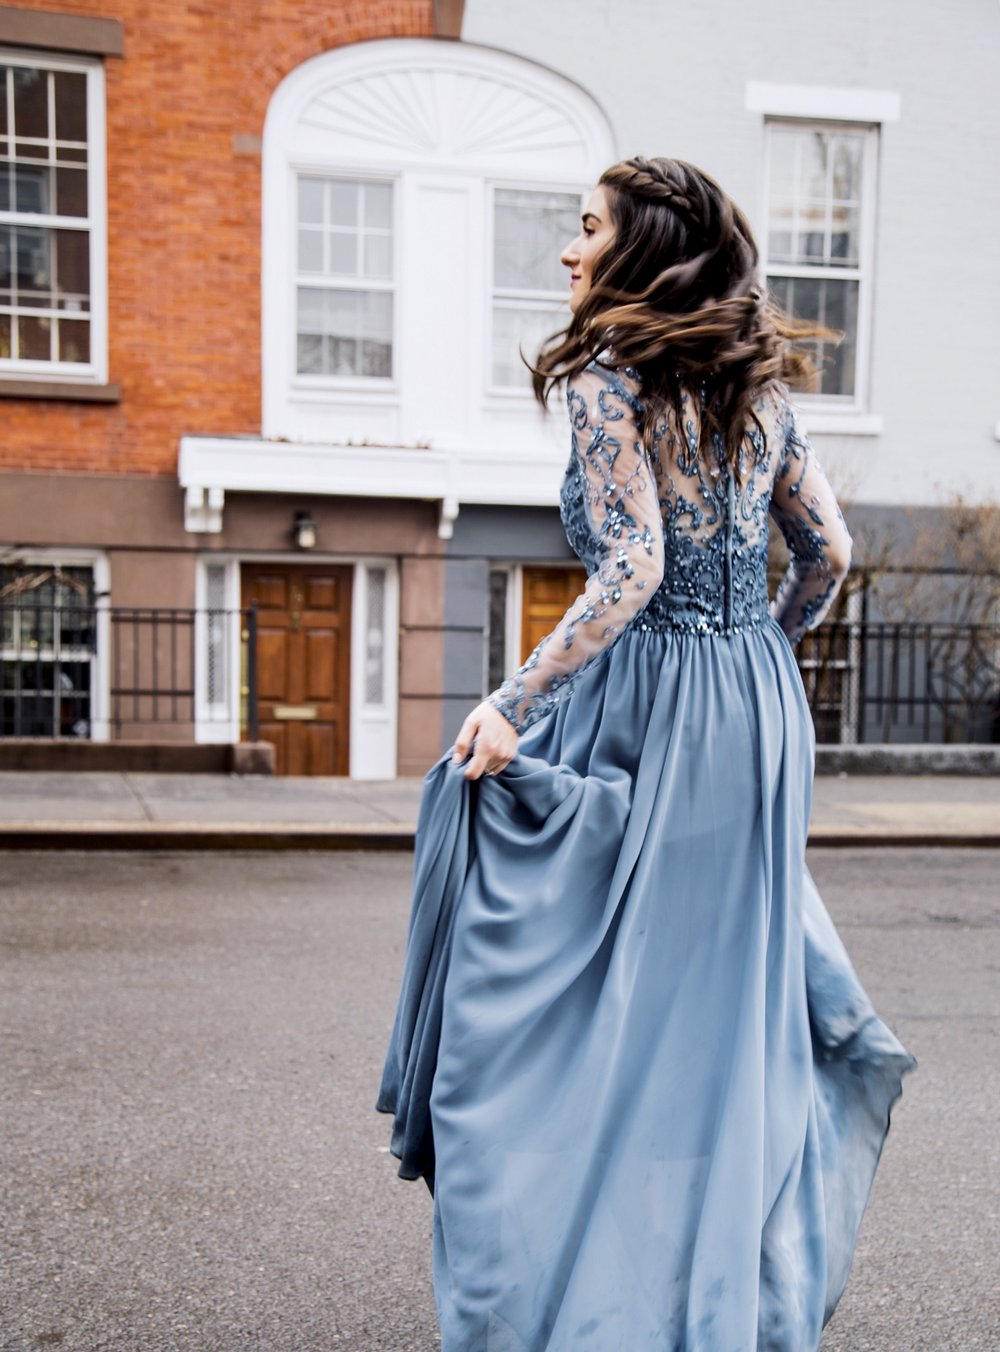 Princess Moments in Morilee Esther Santer Fashion Blog NYC Street Style Blogger Outfit OOTD Trendy Bridesmaid Dress Elsa Frozen Inspiration Braid Hair Women Girl Fancy Elegant Gorgeous Dressed Up Shopping Wedding Buy Blue Beaded  Sheer Long Sleeves.jpg